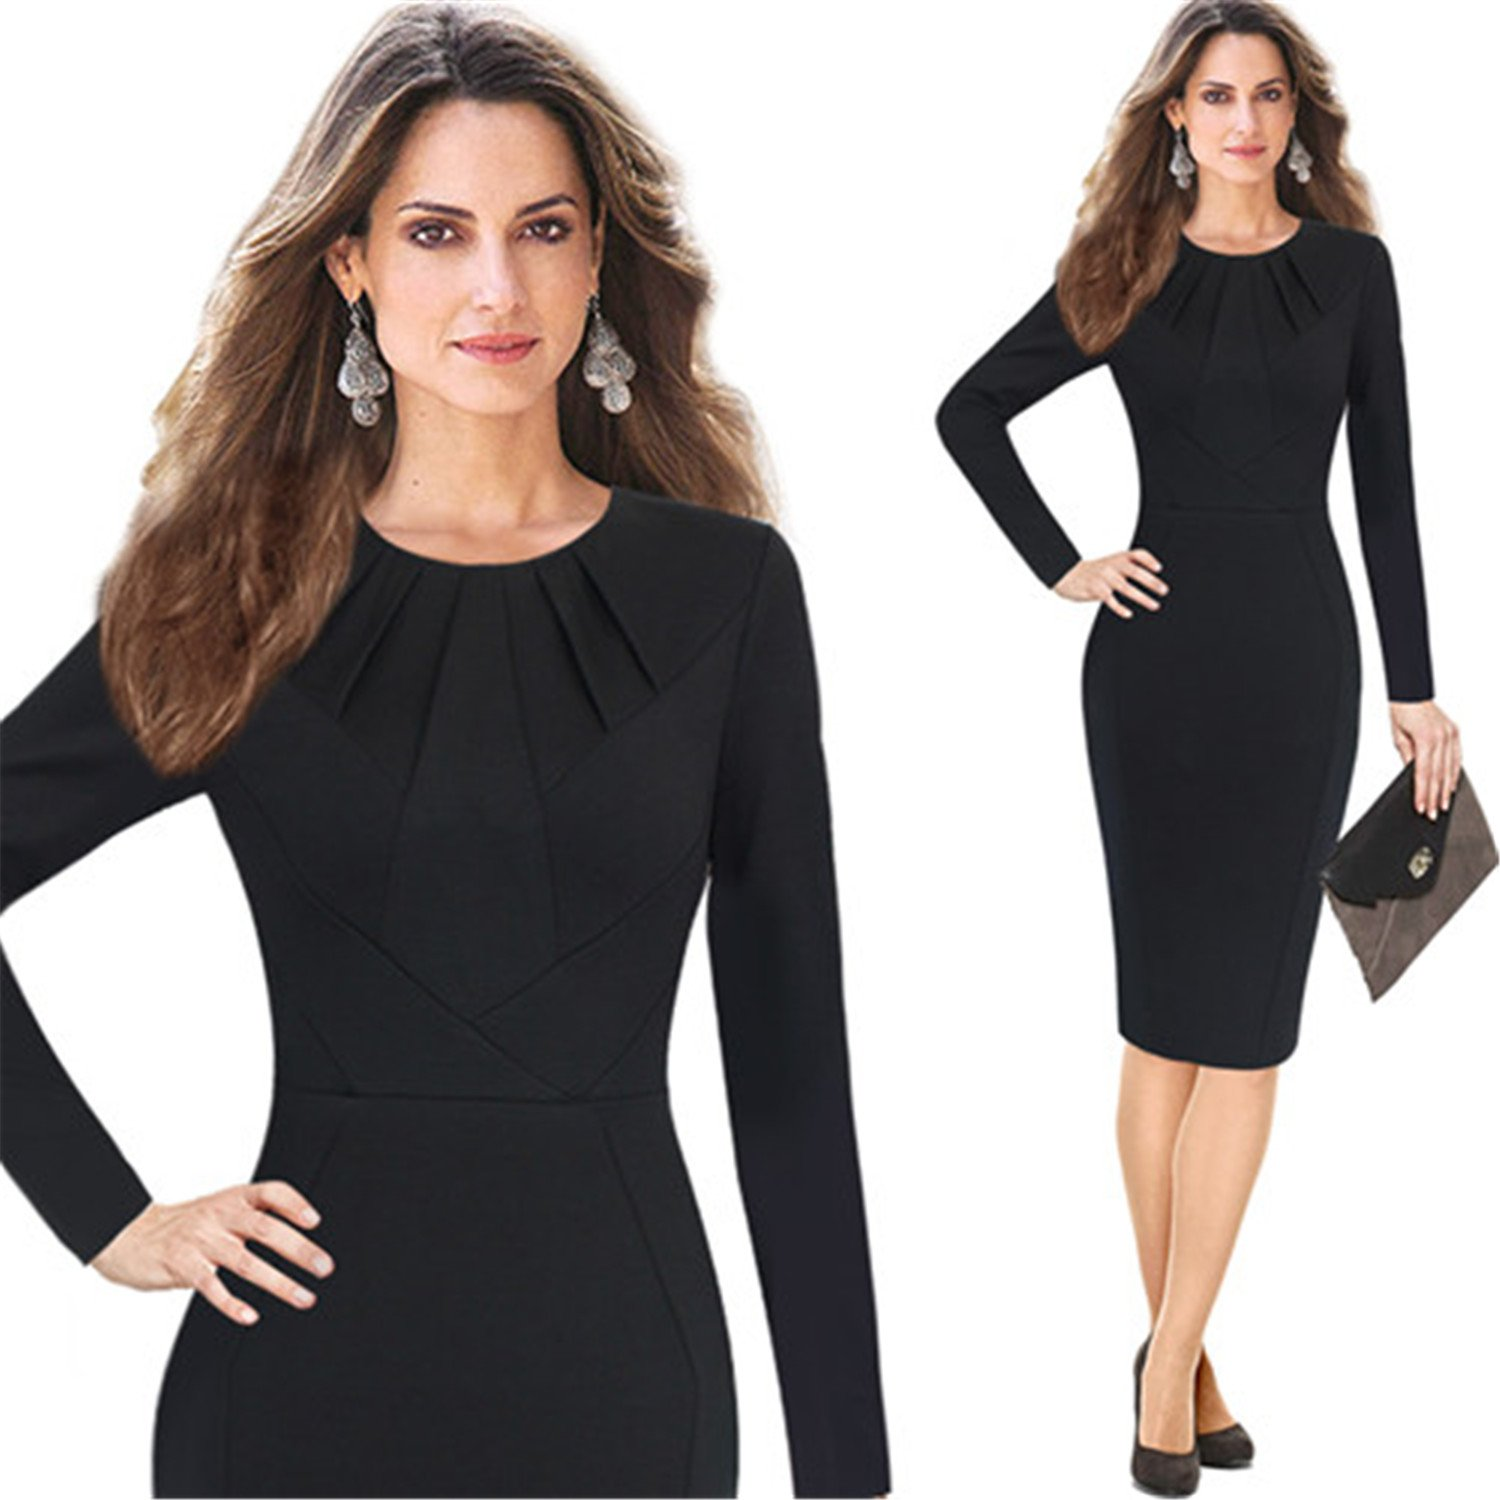 Crissiste Dresses Autumn Winter Pleated Neck Patchwork Office Party Cocktail Bodycon Sheath Dress 8428 Black XL